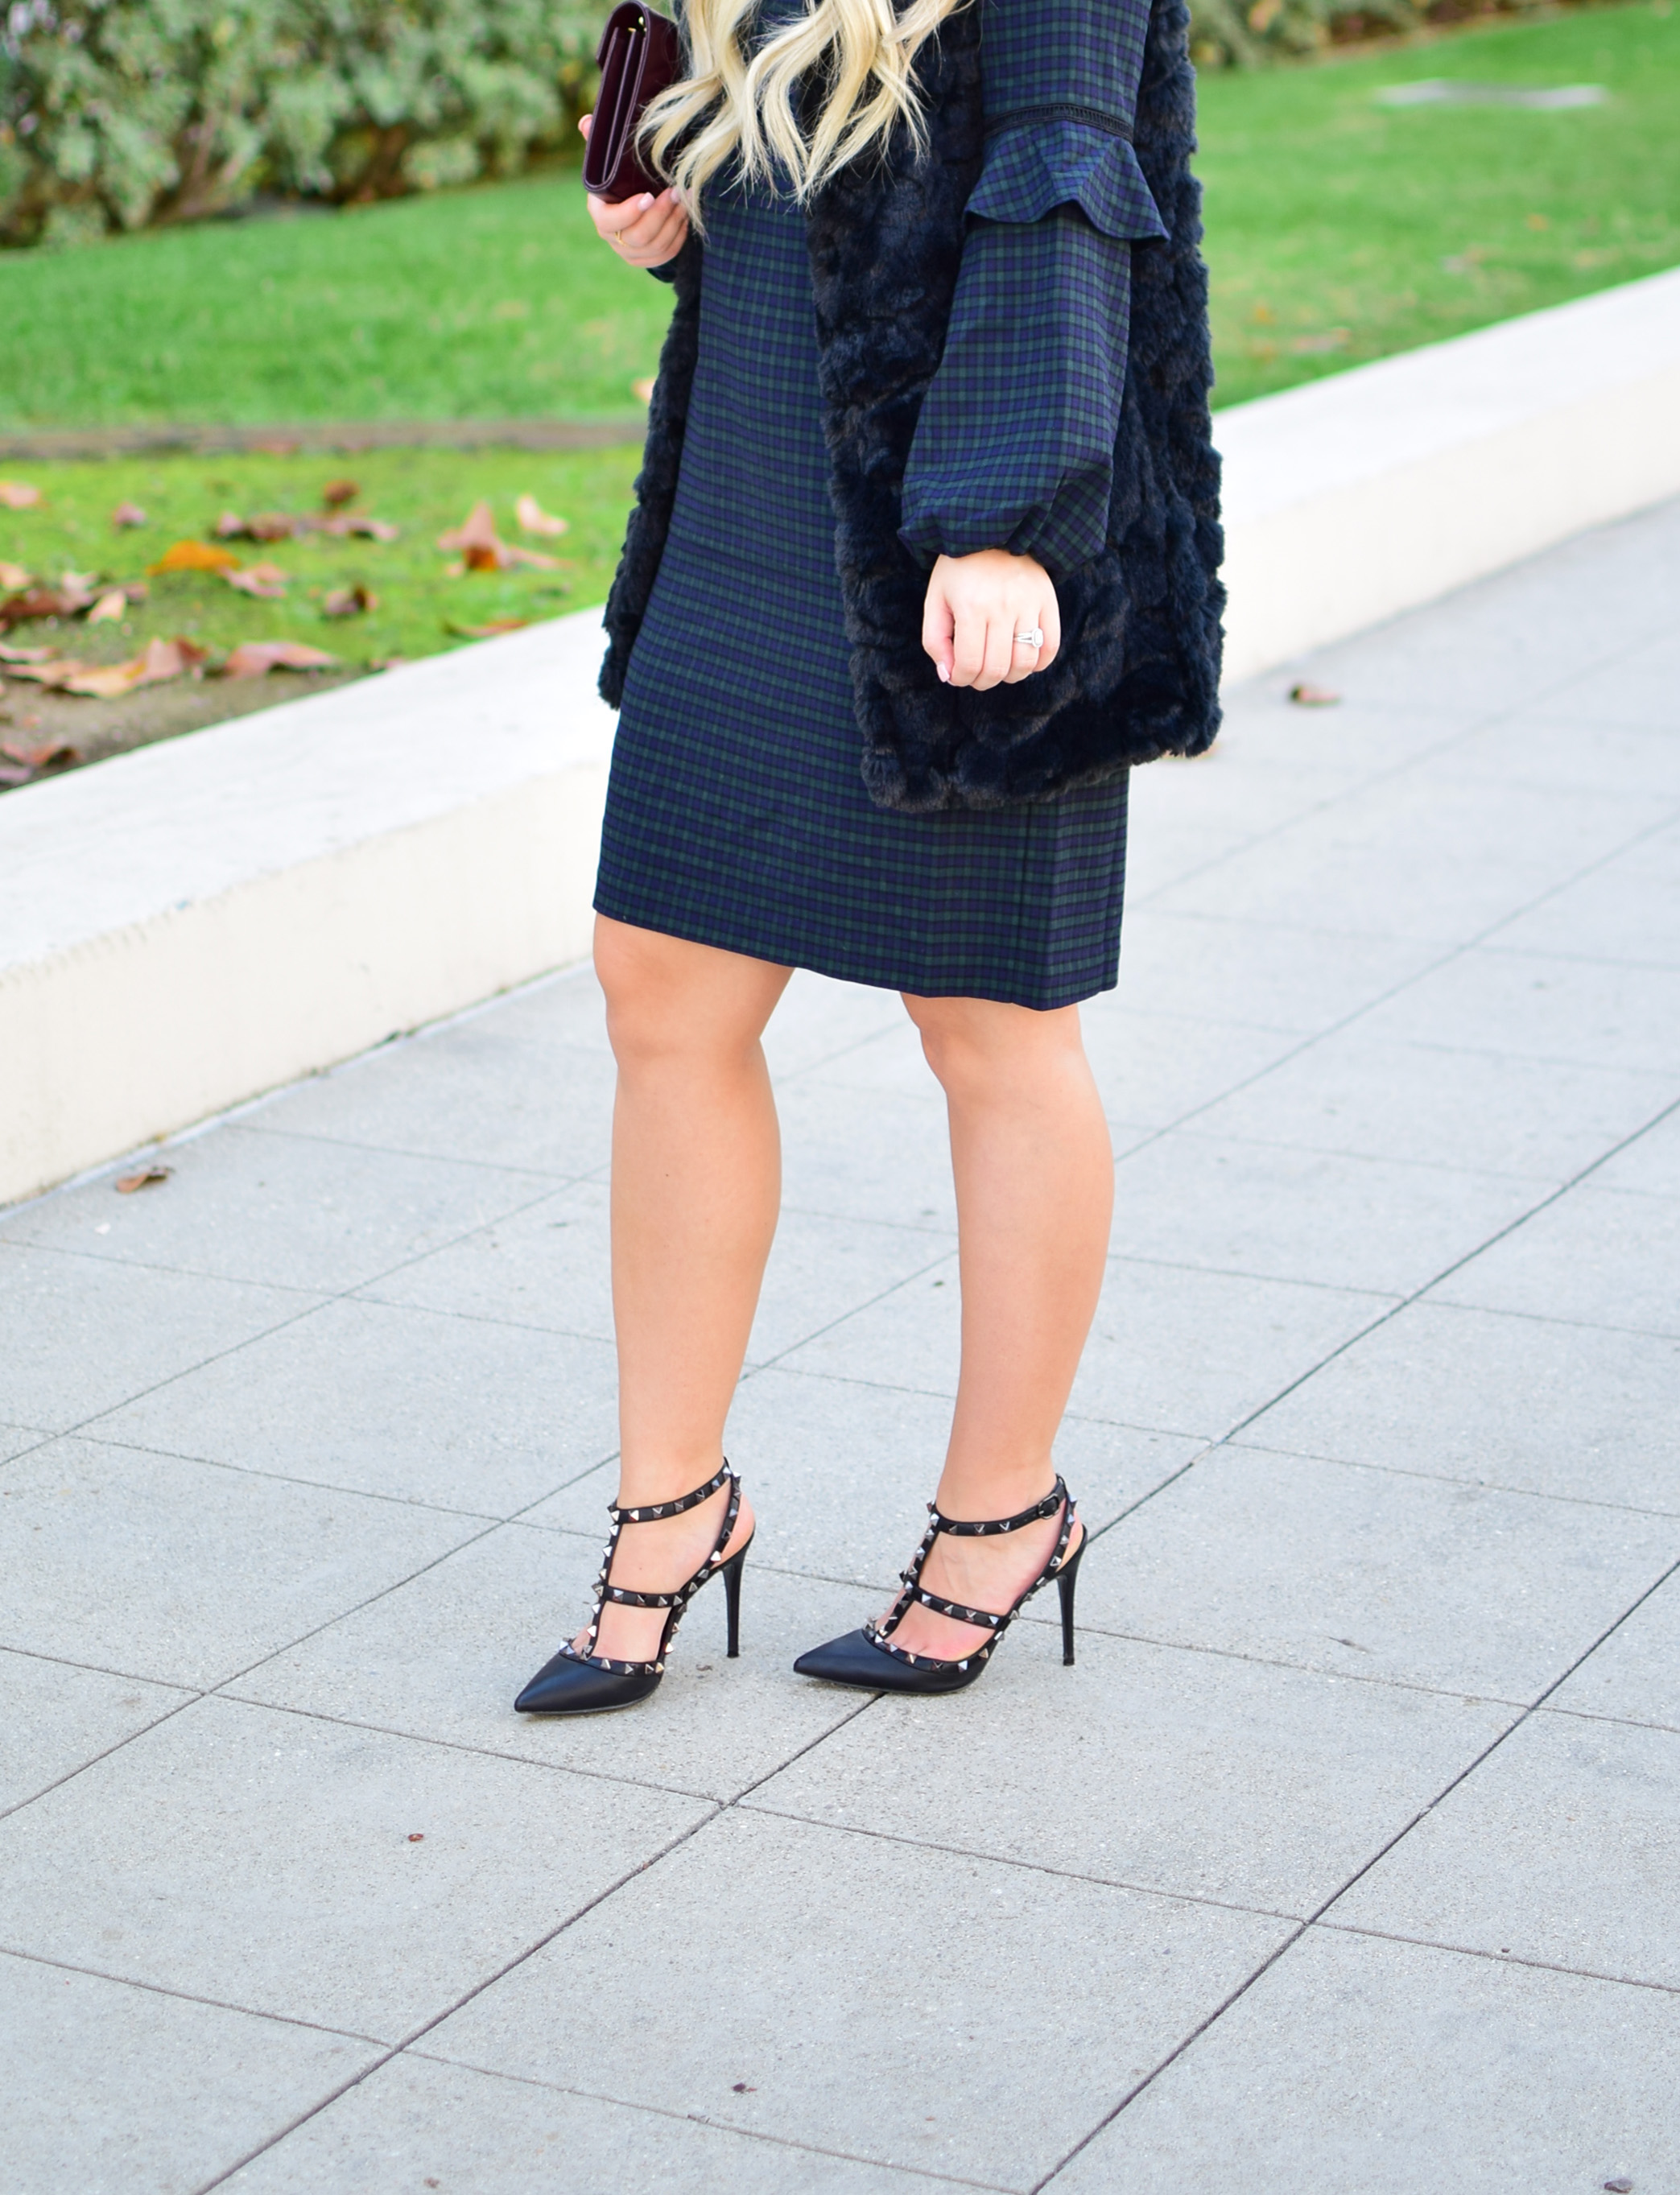 LOFT Green Plaid Dress for Work & Play - Personally Styled Blog